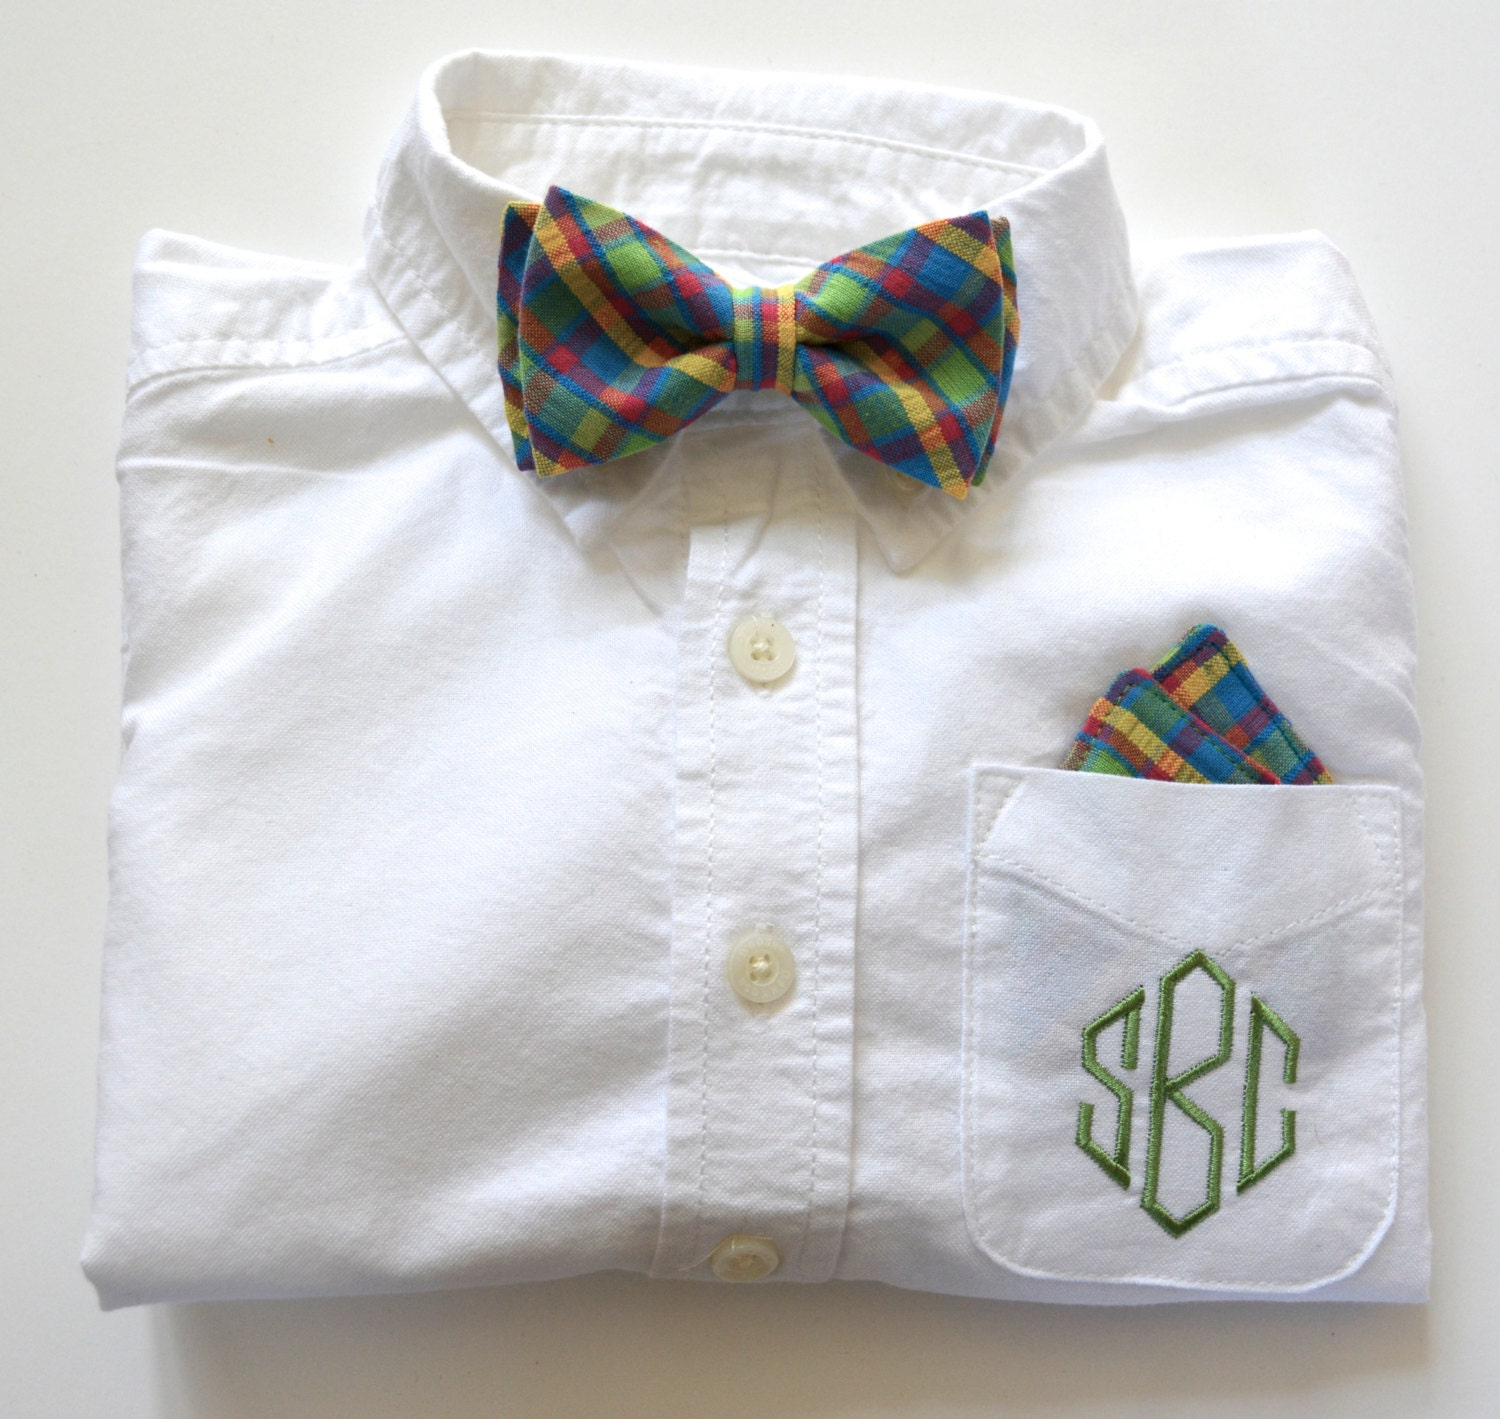 Baby boybaby boy t shirt and bow tie set for boysbaby